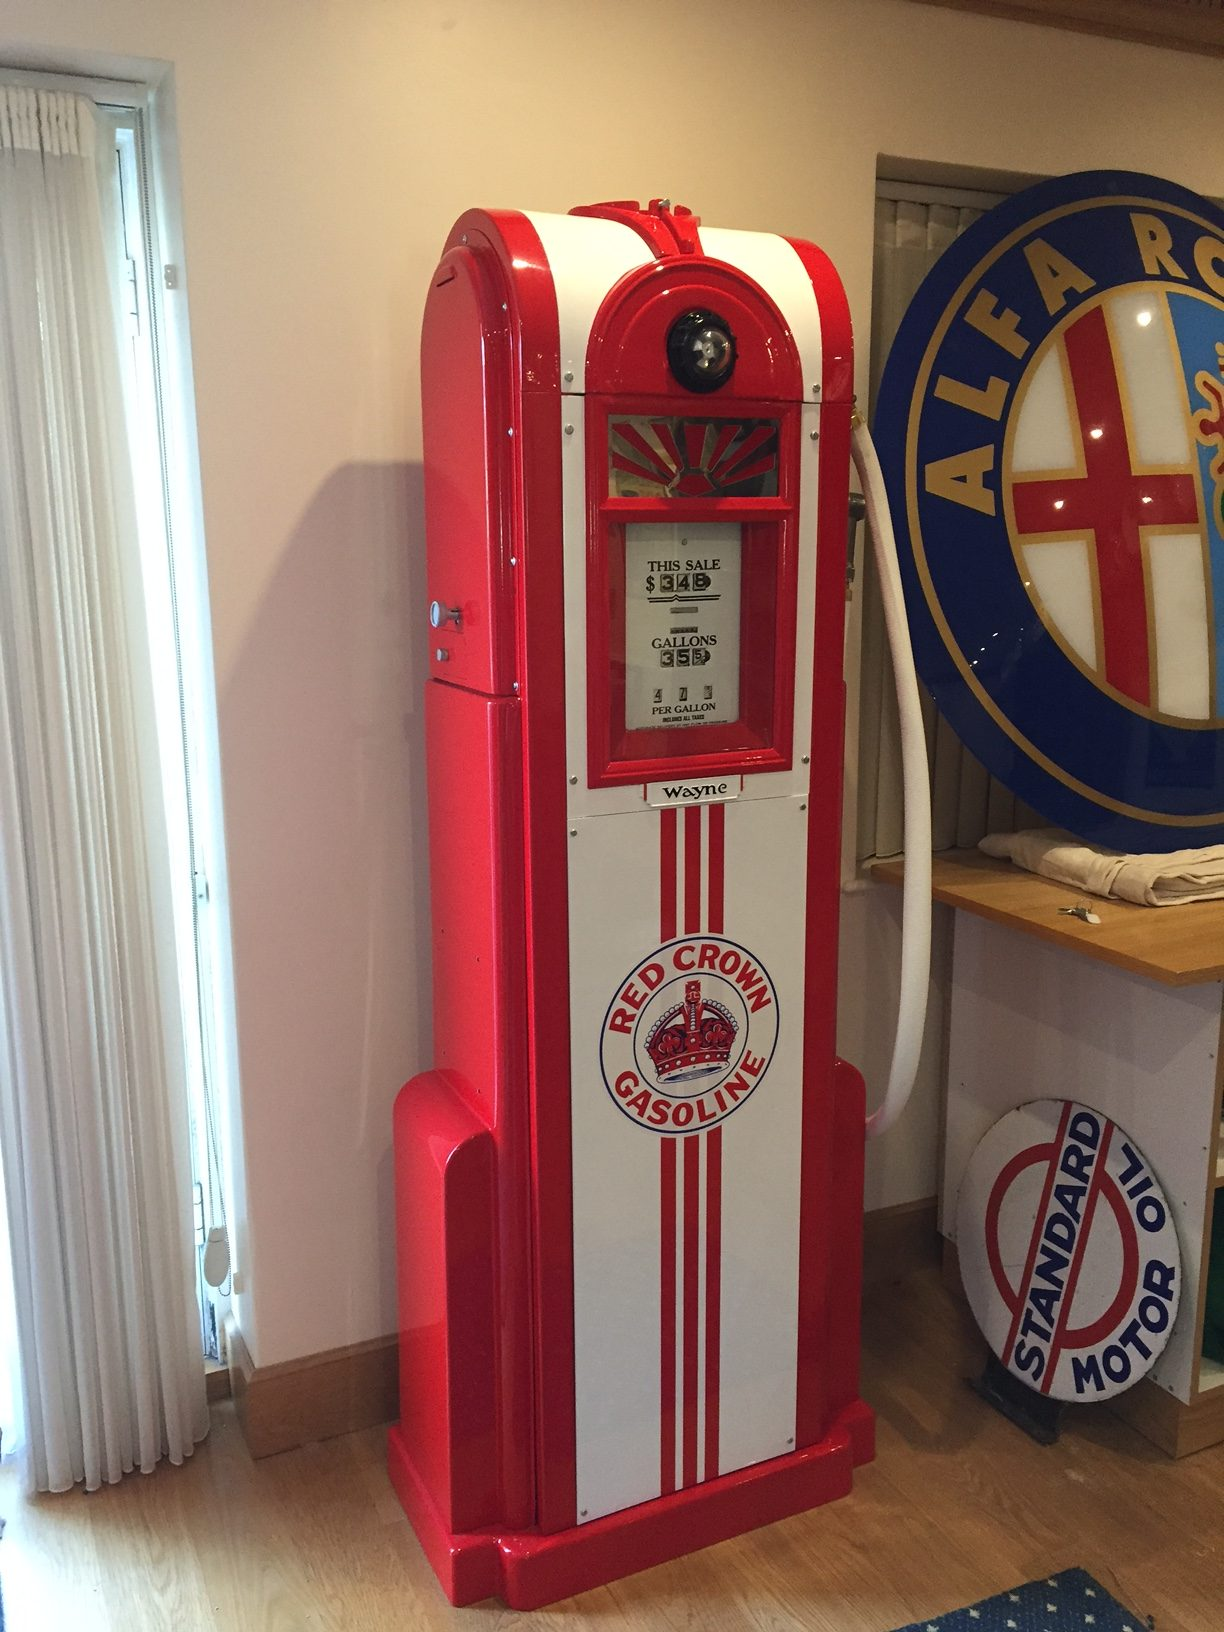 Wayne 60 Petrol Pump in Red Crown Gasoline Livery